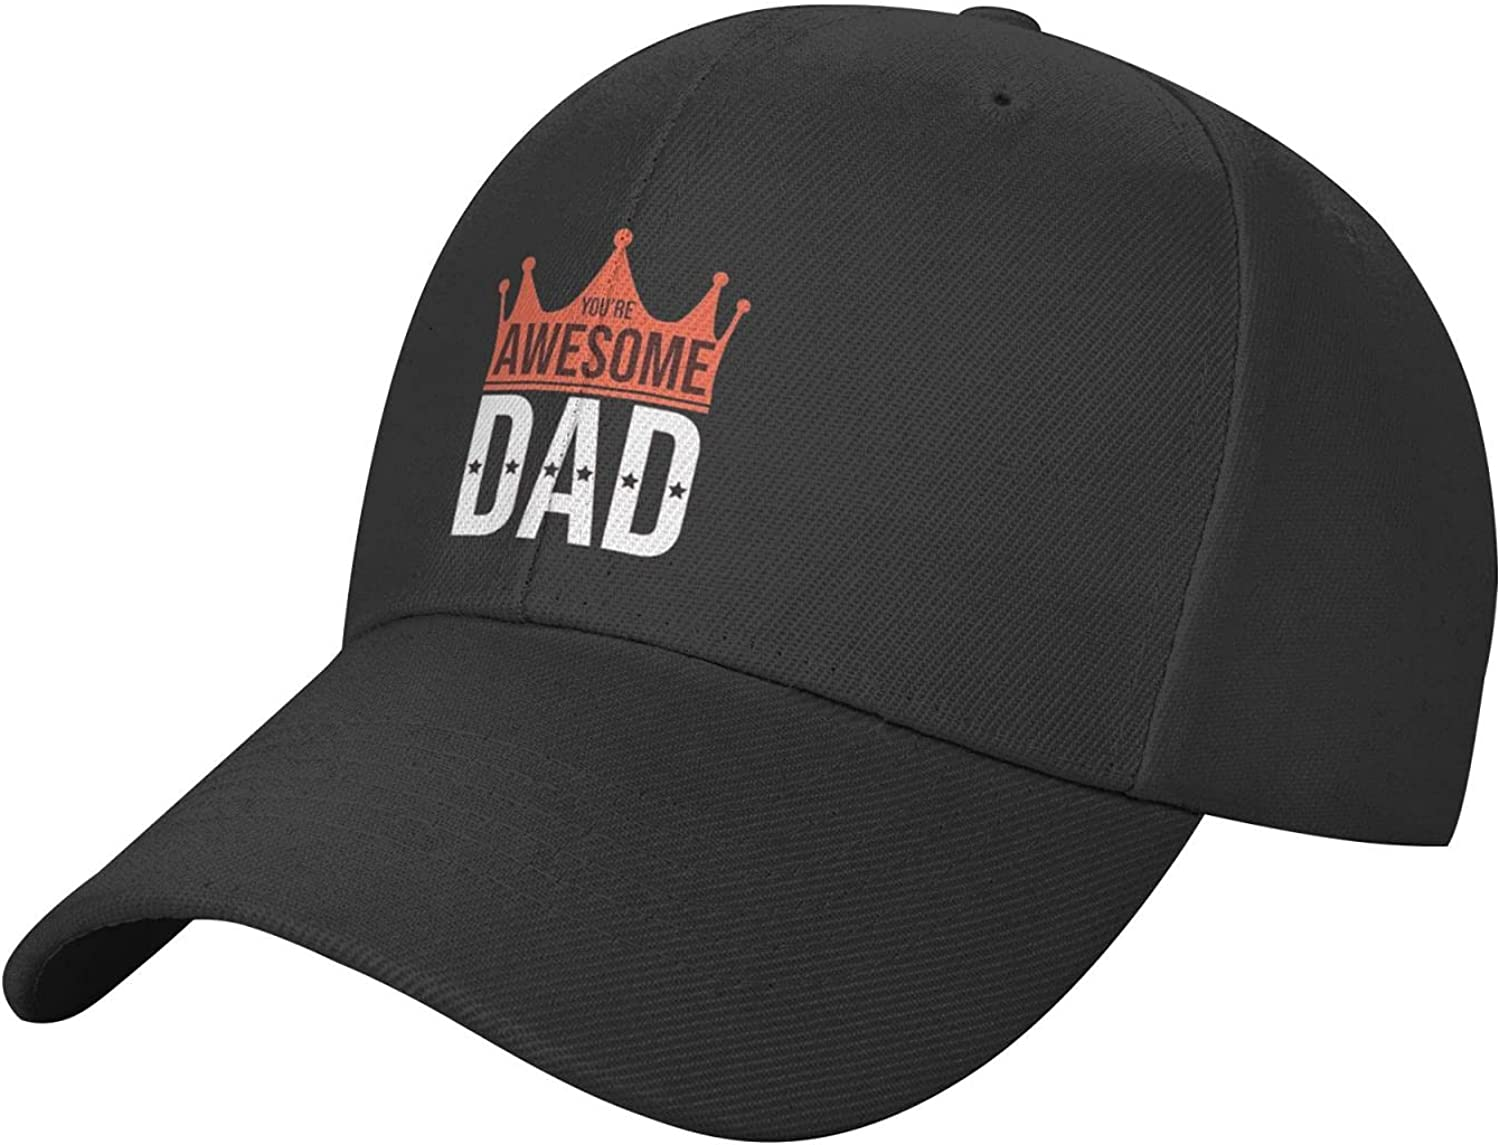 vdcucc Awesome Dad Fashion Solid Color Cap Hat Man Woman Cool Baseball Cap Adjustable Caps Dad Hat